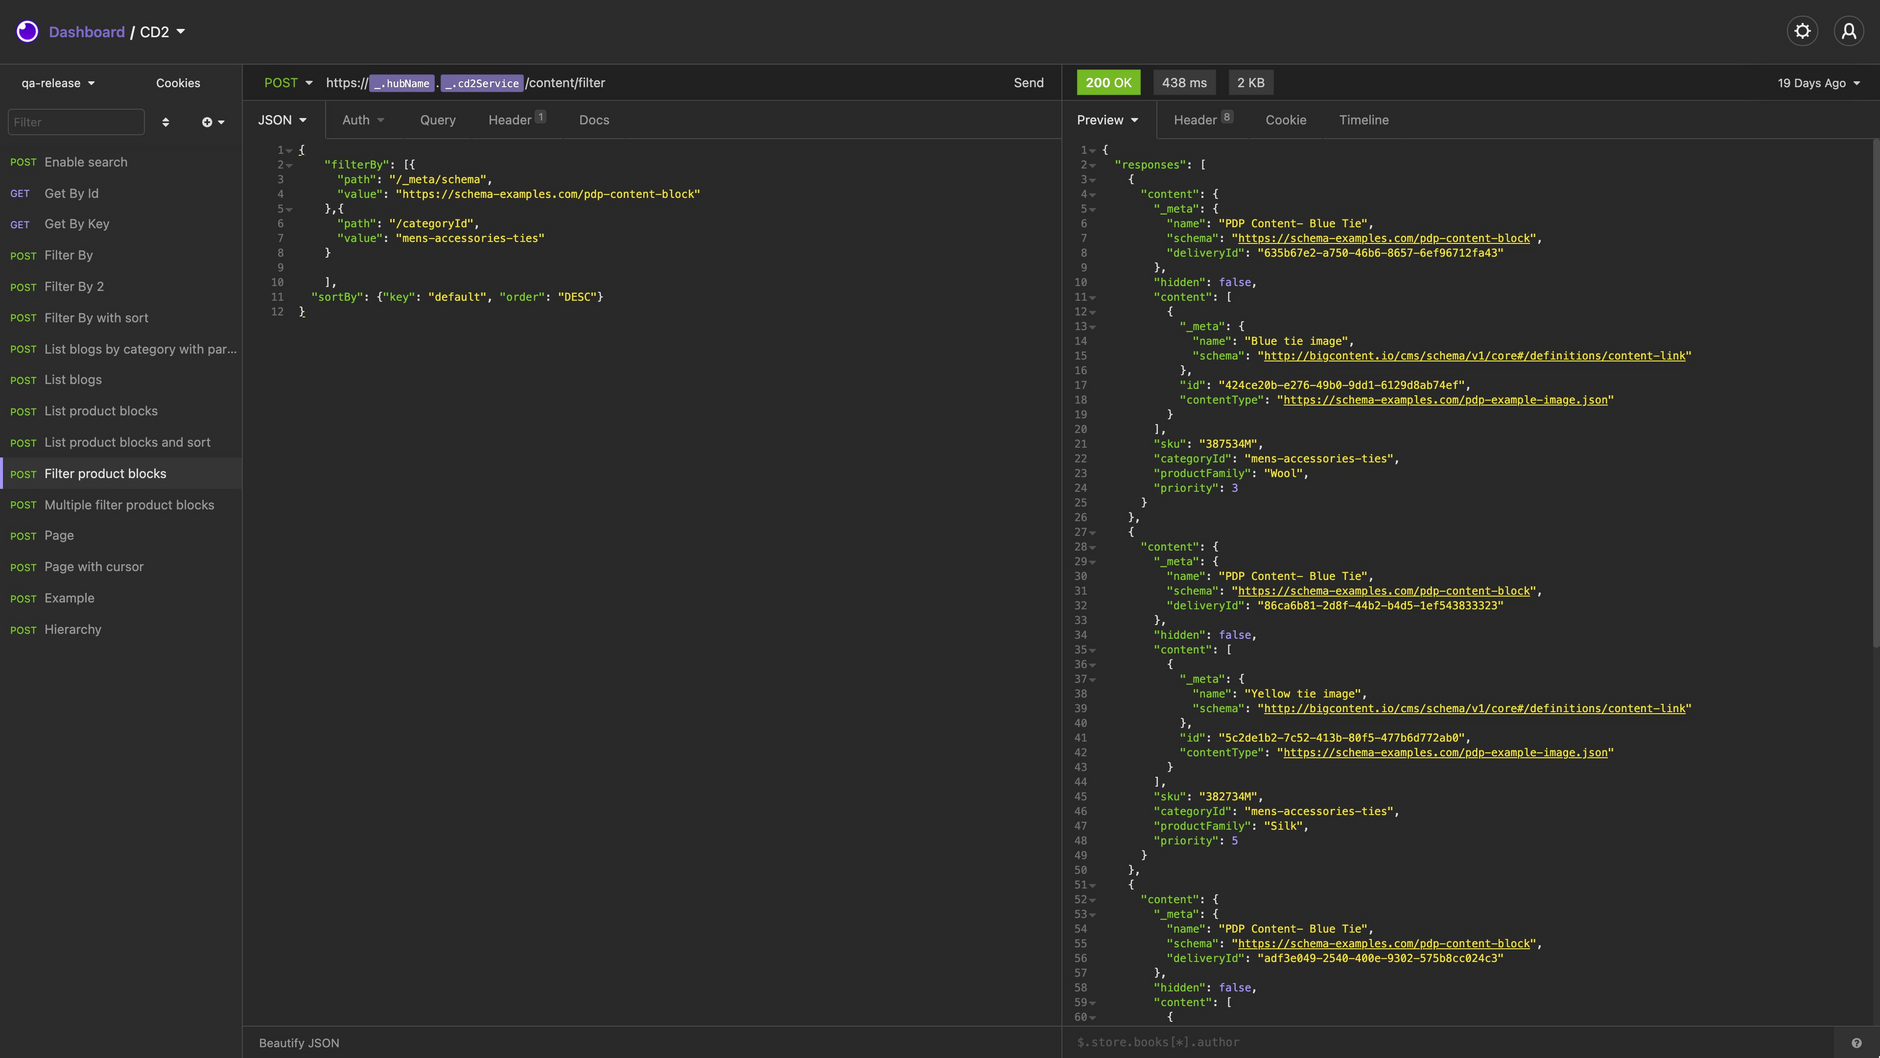 An example filter API request and response.